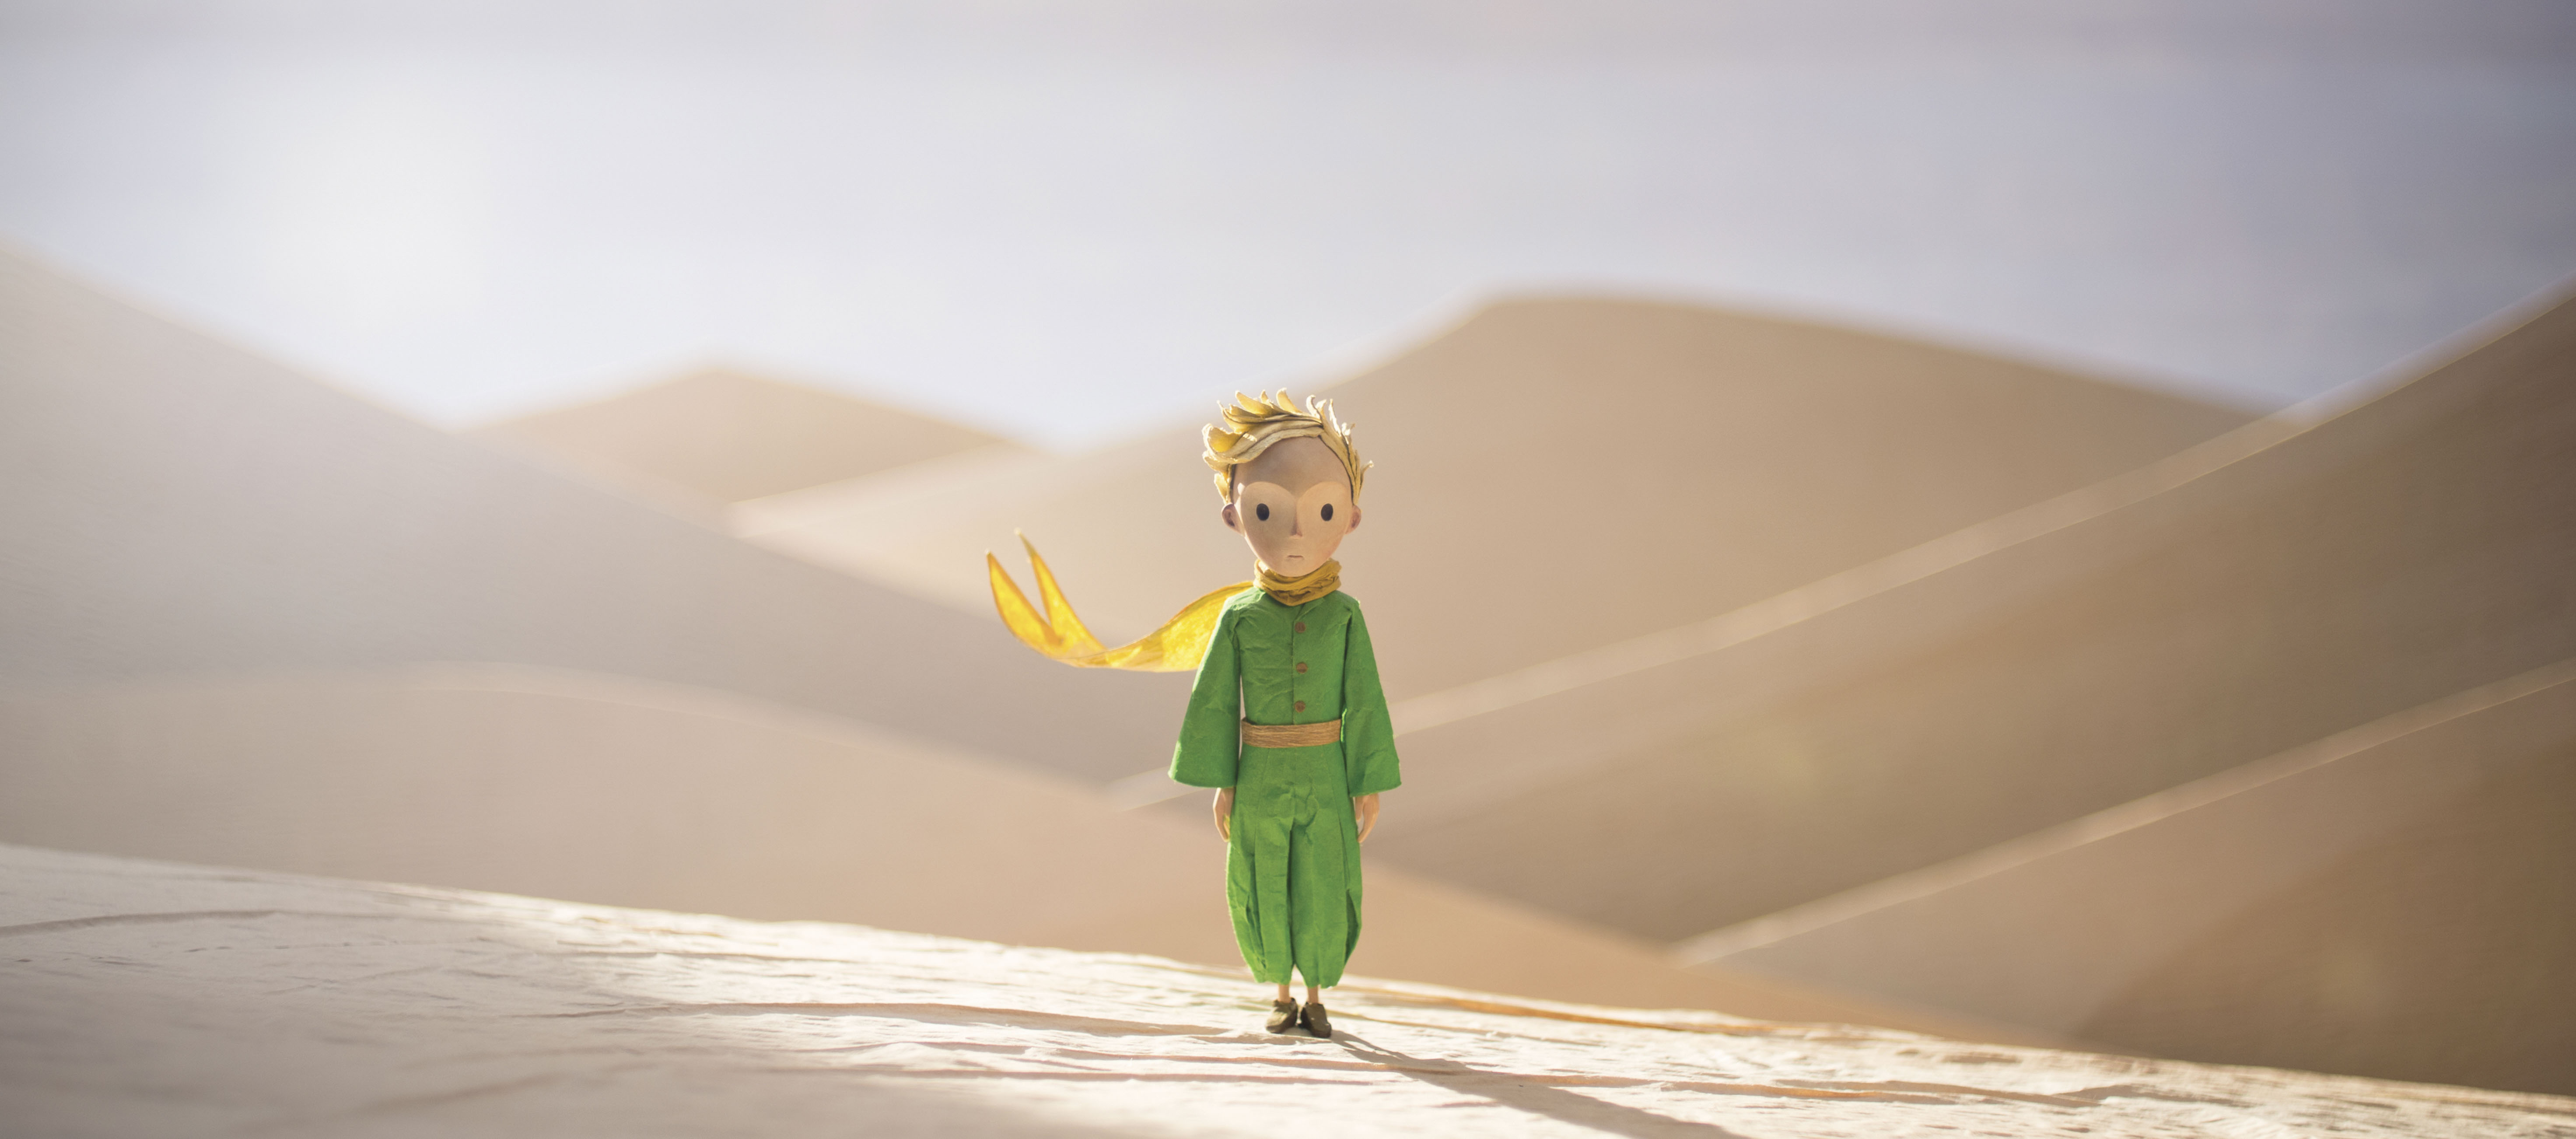 1125x2436 The Little Prince 2015 Iphone Xs Iphone 10 Iphone X Hd 4k Wallpapers Images Backgrounds Photos And Pictures